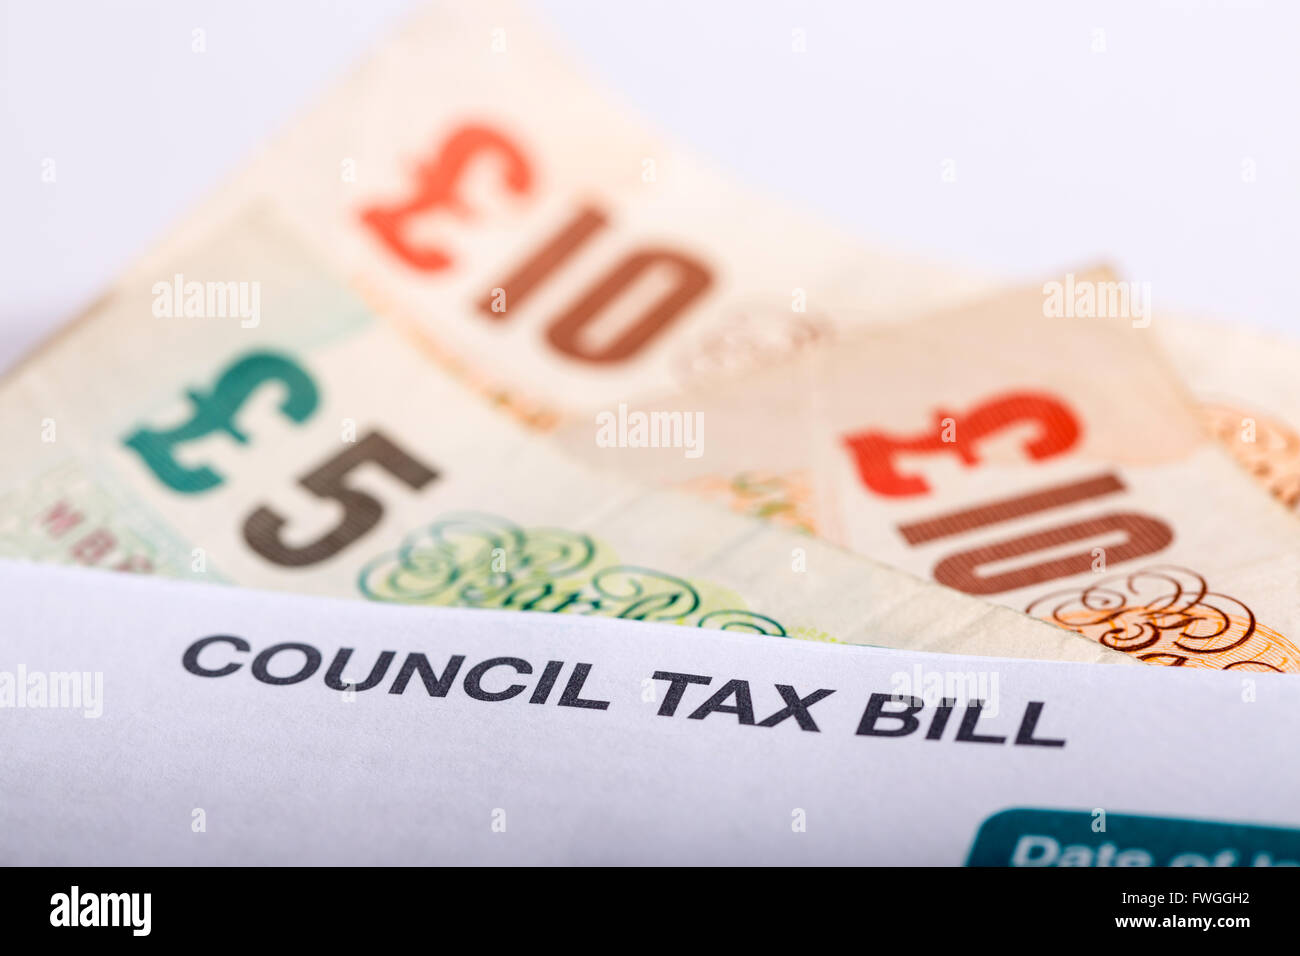 Council Tax bill in the UK - Stock Image